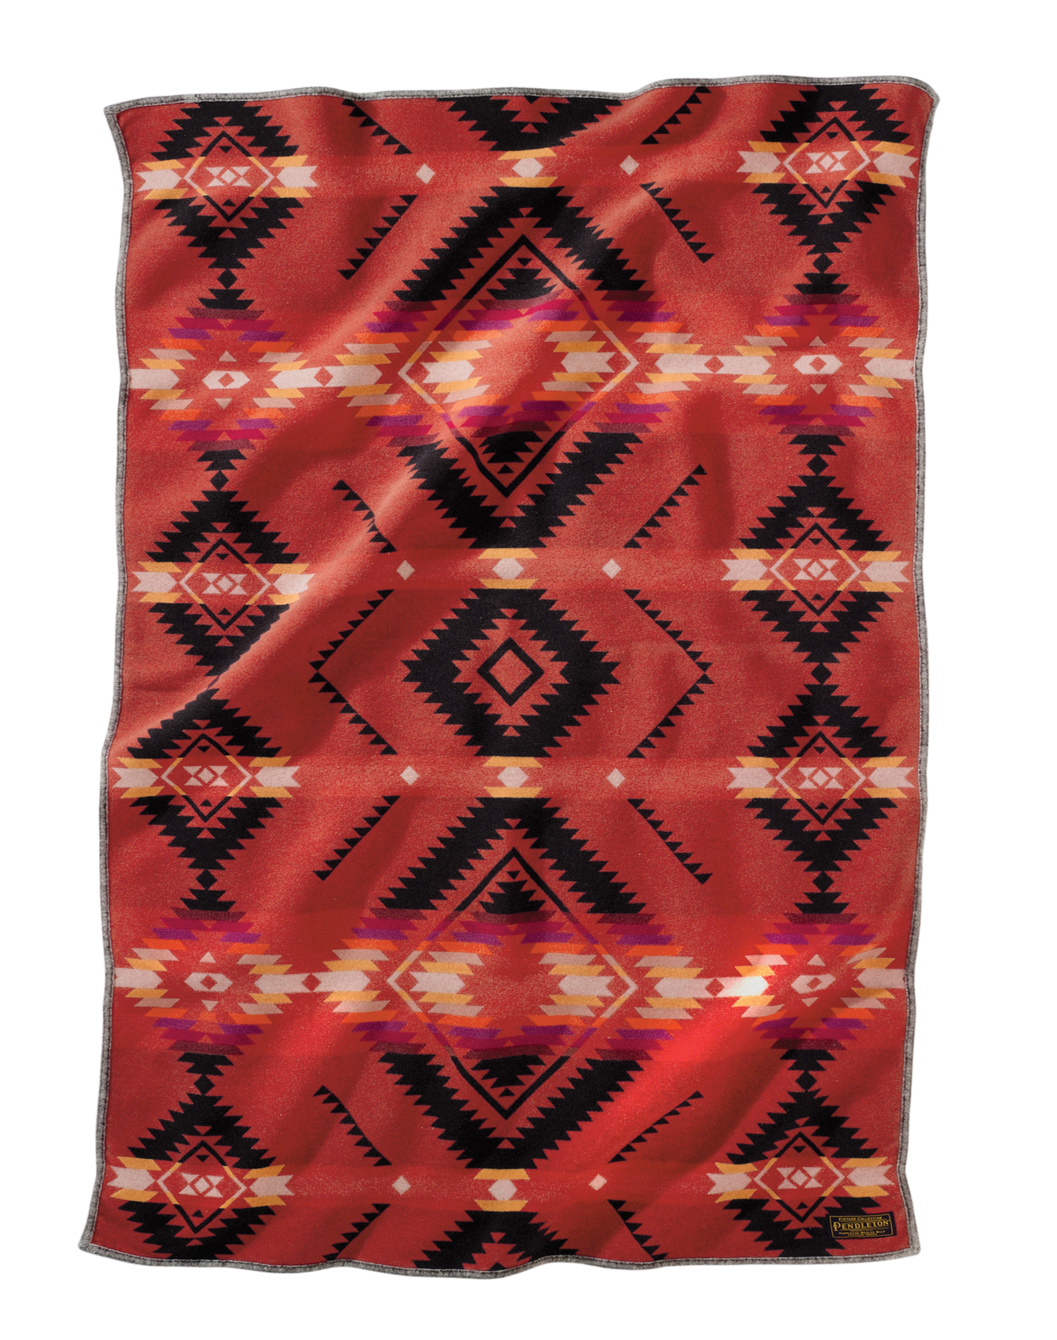 the pendleton vintage collection blankets